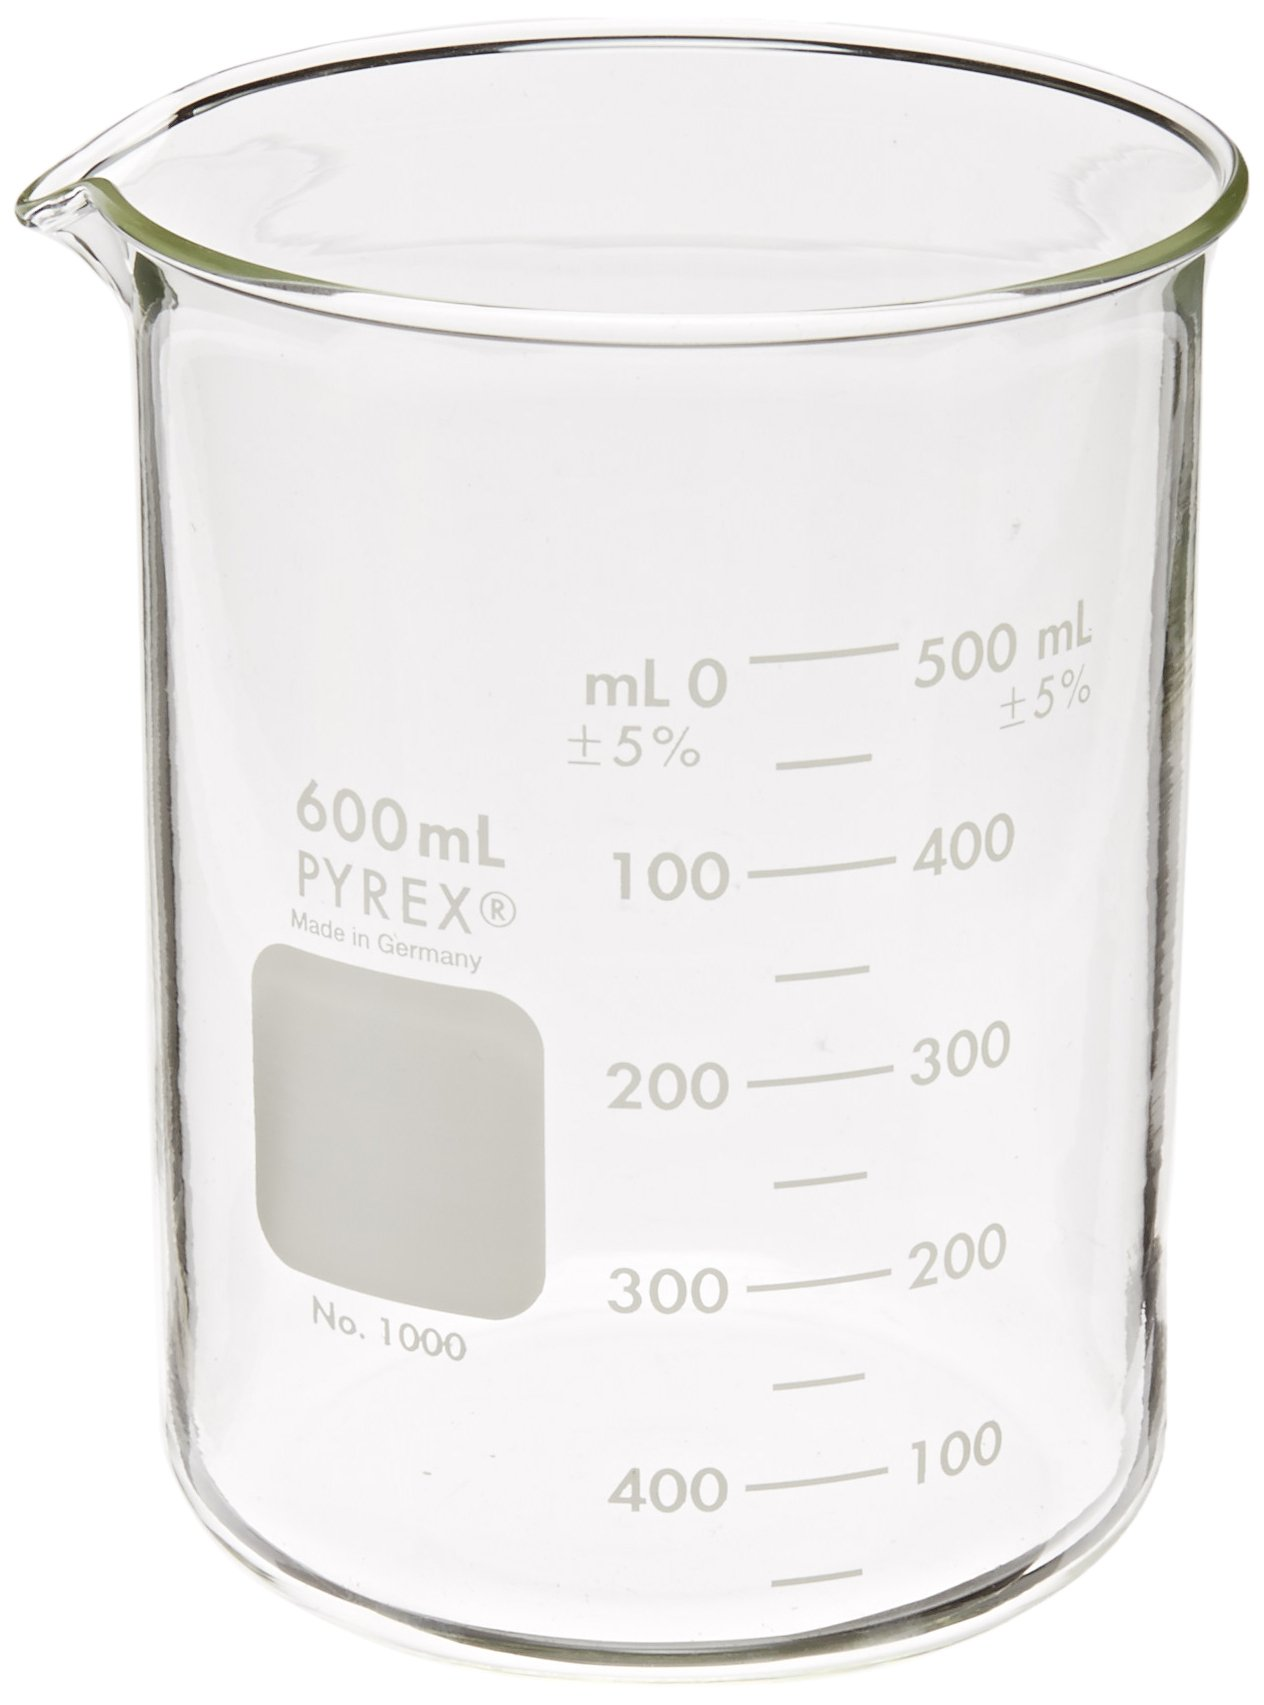 Corning Pyrex 1000-600 Glass 600mL Graduated Low Form Griffin Beaker, 50mL Graduation Interval, with Double Scale by Corning